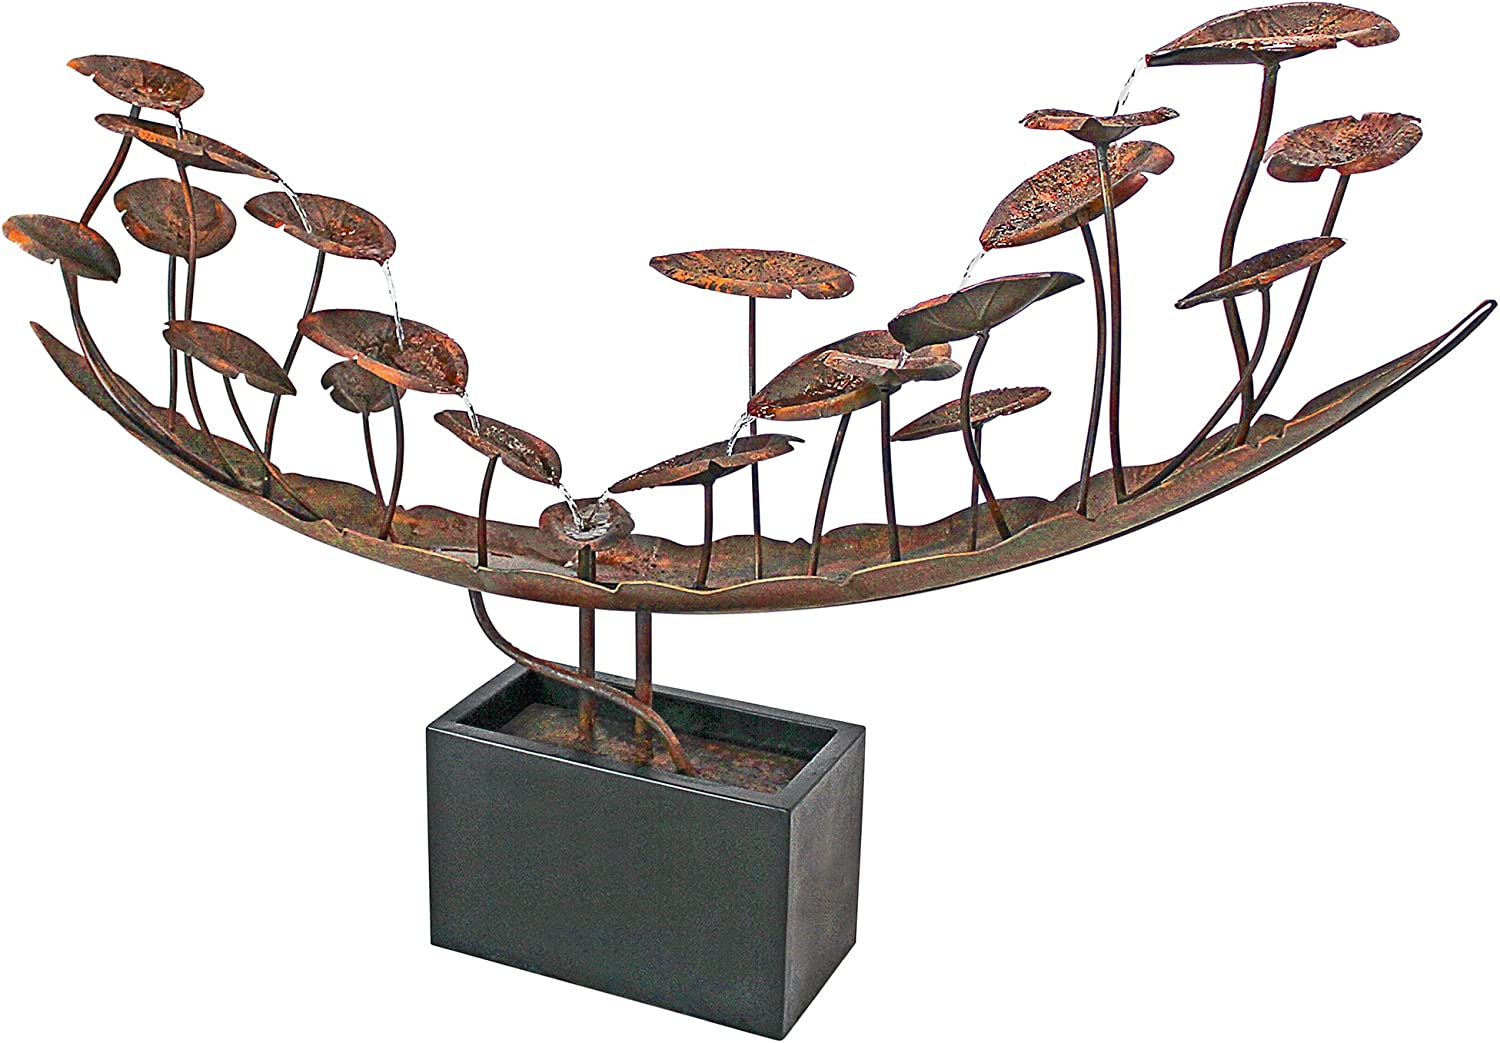 Water Fountain - Nearly 9 Foot Long Grande Asian Botanical Garden Decor  Metal Fountain - Outdoor Water Feature